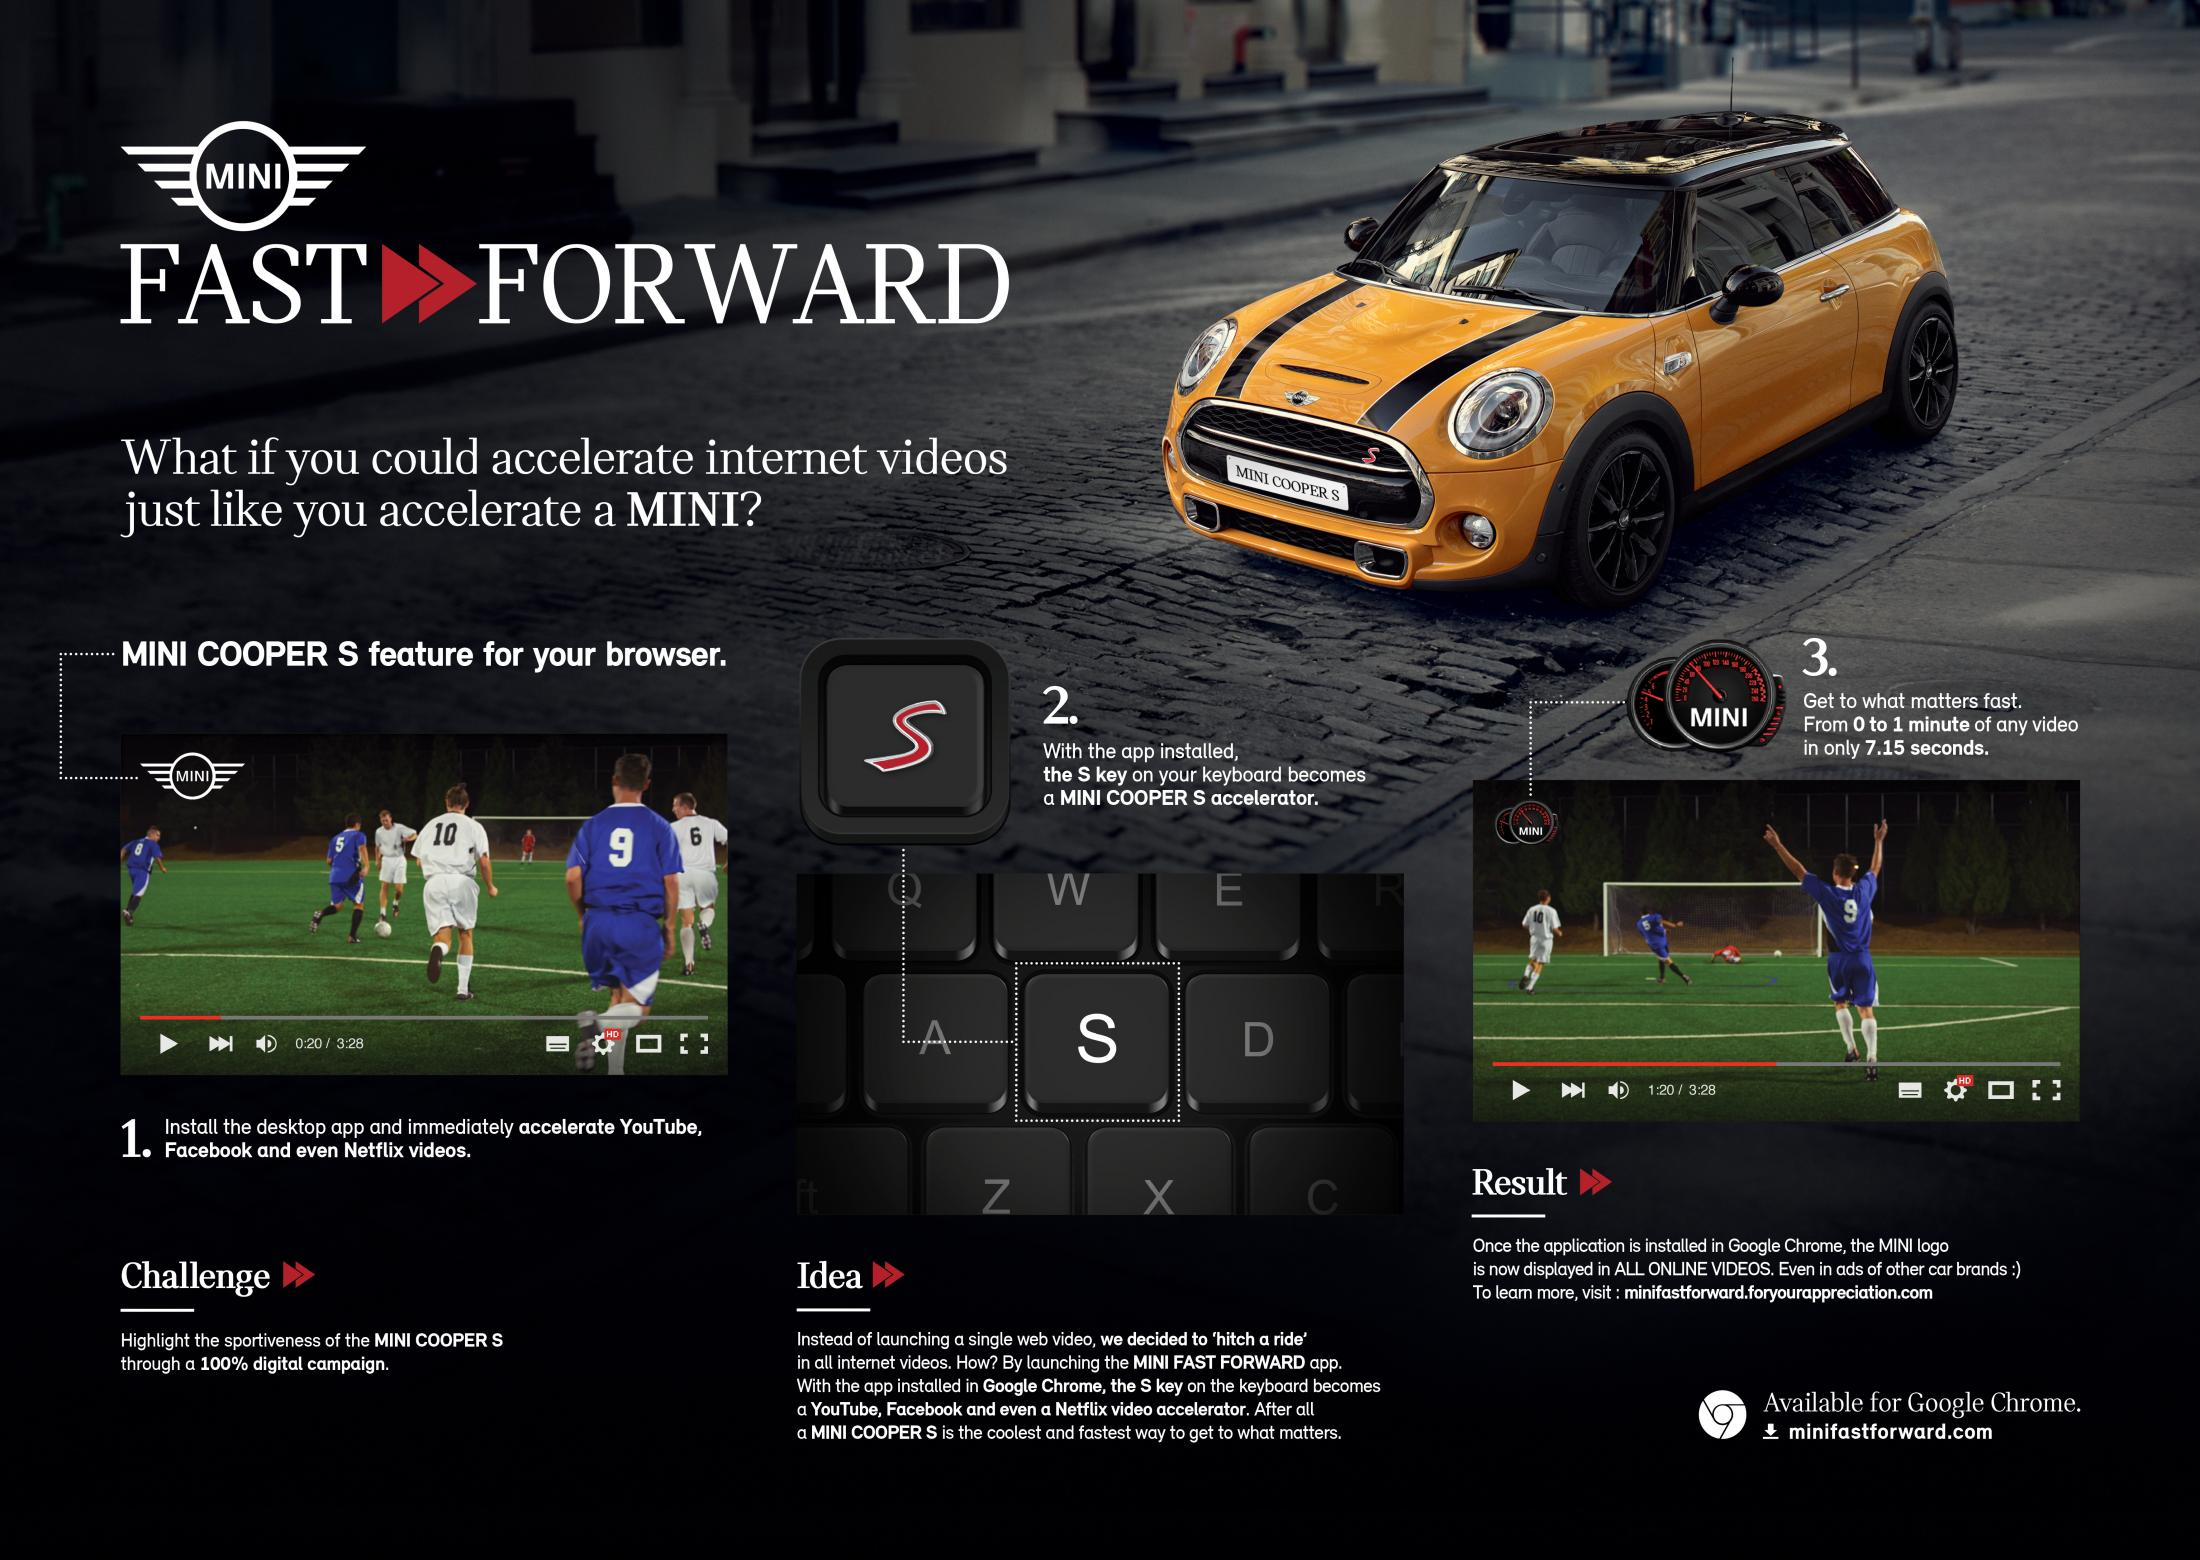 Image Media for MINI Fast Forward